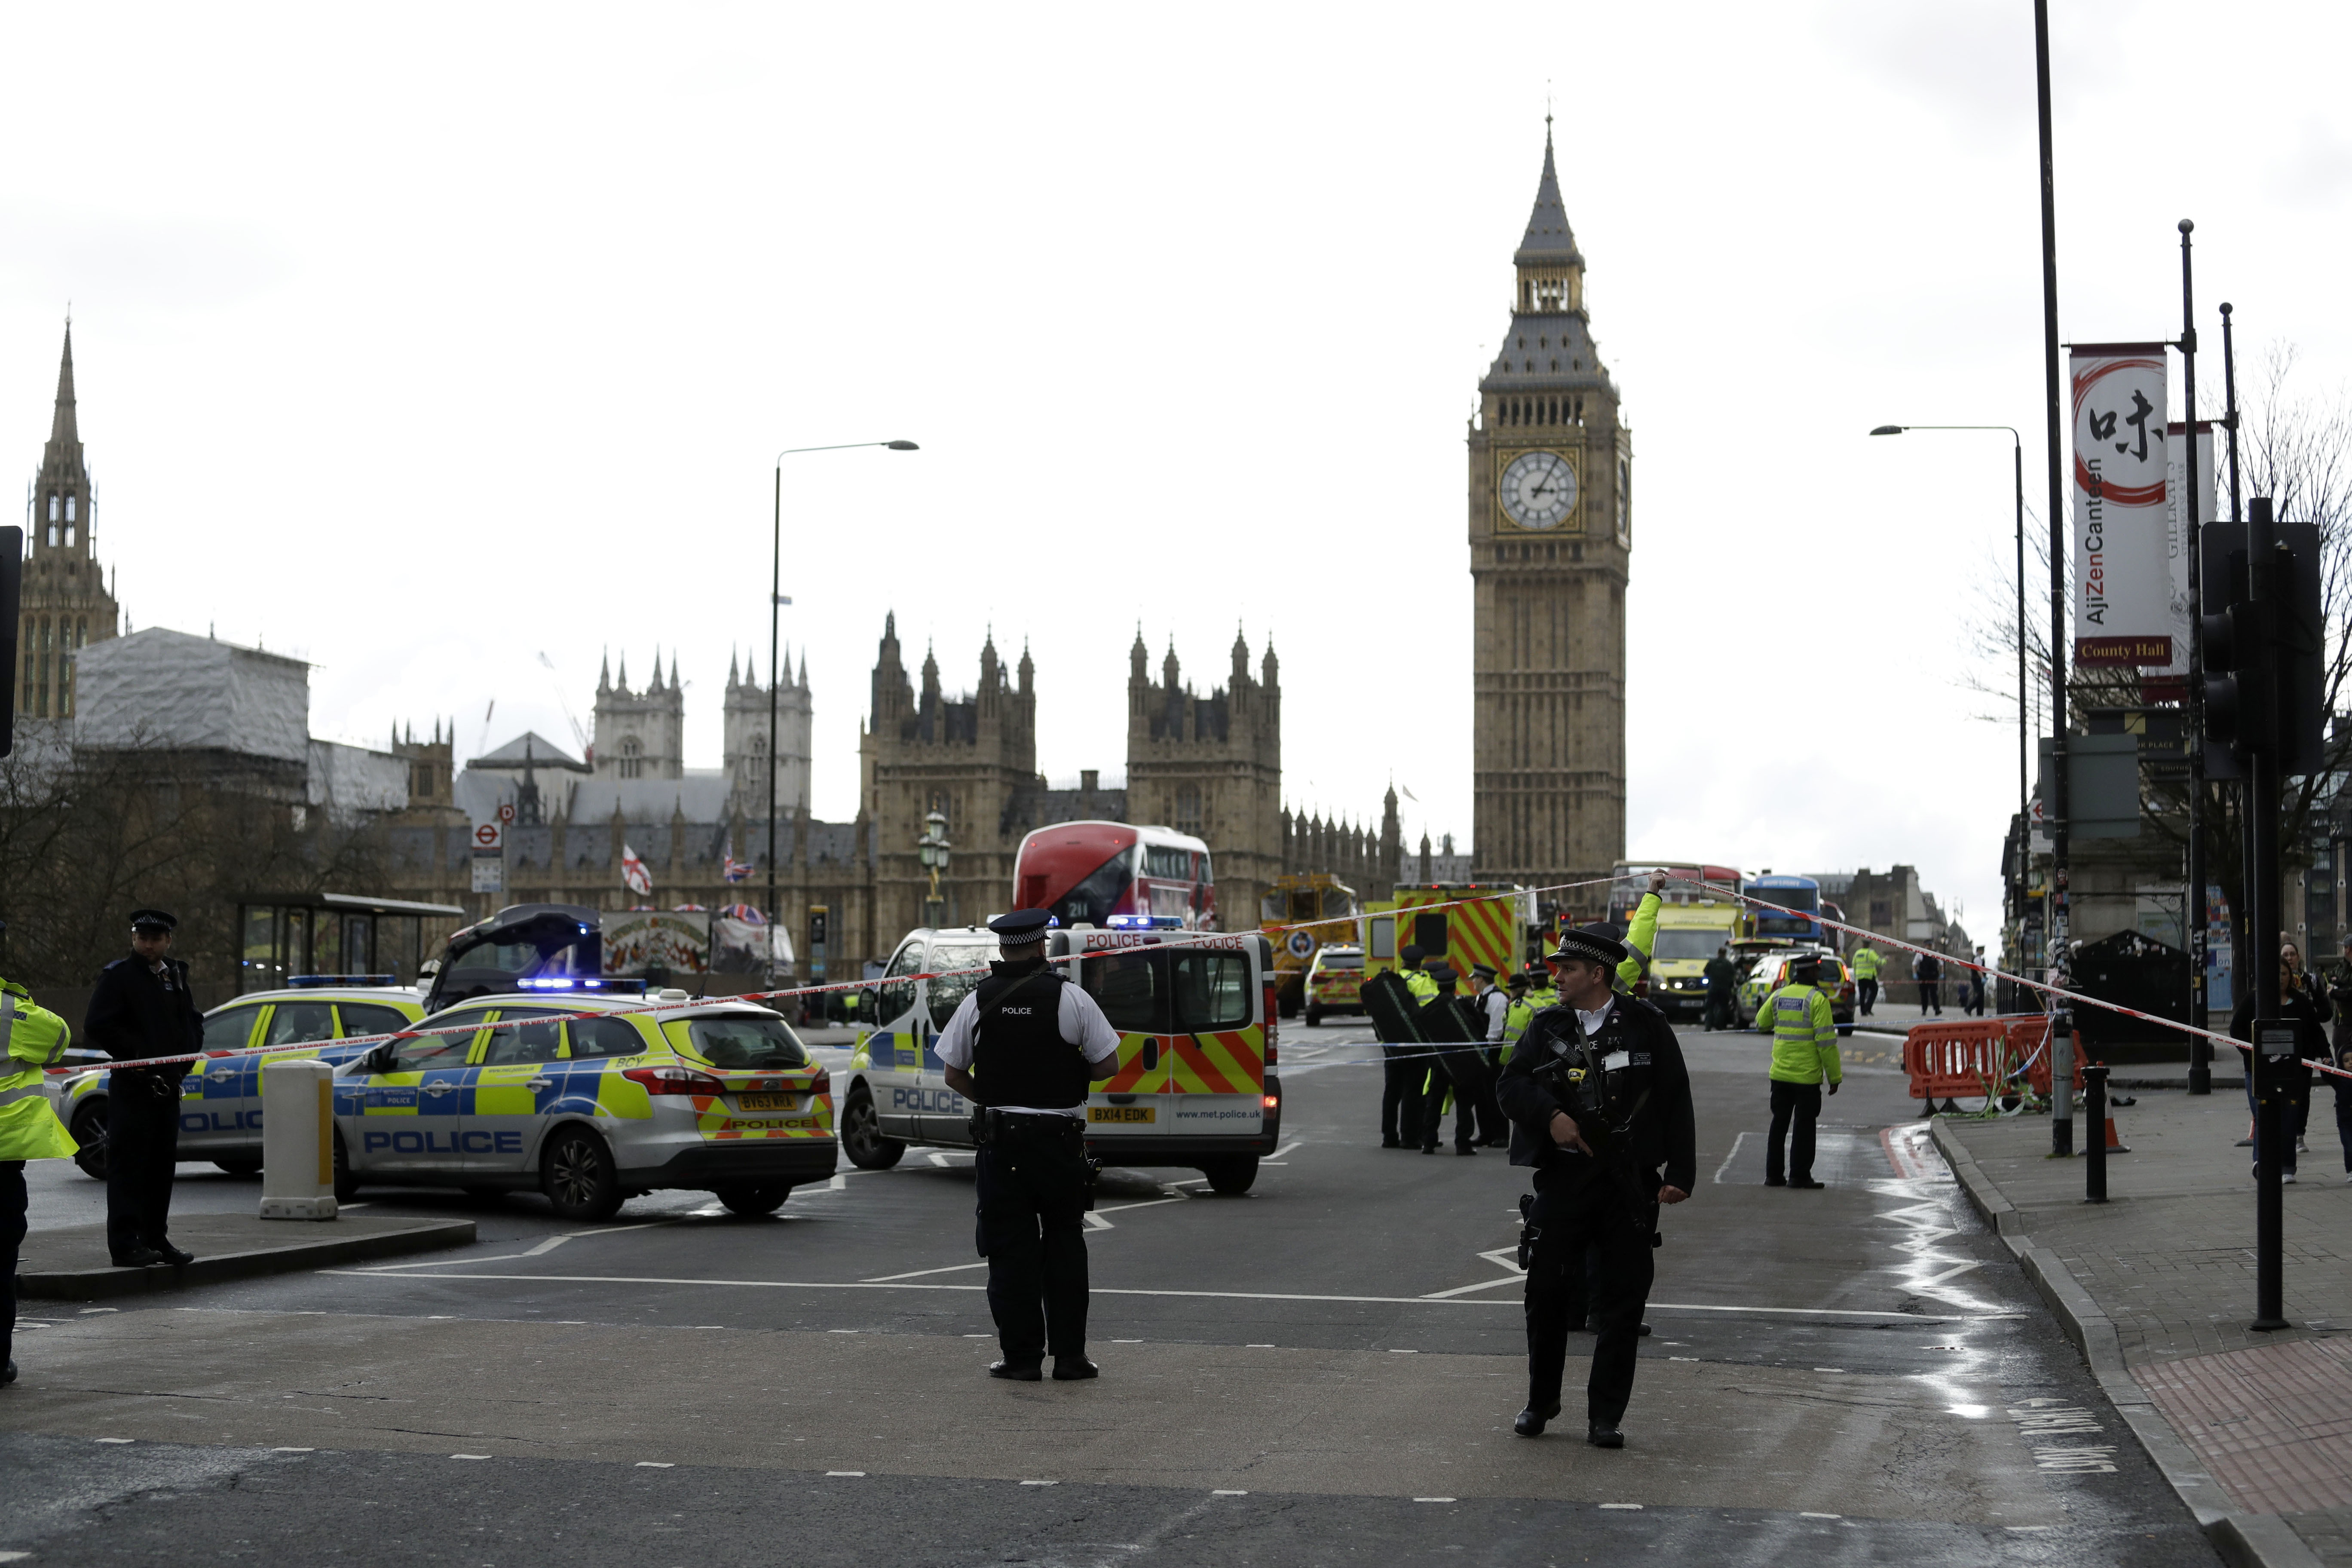 """Copyright 2017 The Associated Press. All rights reserved. This material may not be published, broadcast, rewritten or redistributed without permission.Mandatory Credit: Photo by AP/REX/Shutterstock (8550170c)Police secure the area on the south side of Westminster Bridge close to the Houses of Parliament in London, . The leader of Britain's House of Commons says a man has been shot by police at Parliament. David Liddington also said there were """"reports of further violent incidents in the vicinity."""" London's police said officers had been called to a firearms incident on Westminster Bridge, near the parliament. Britain's MI5 says it is too early to say if the incident is terror-relatedBritain Parliament Incident, London, United Kingdom - 22 Mar 2017"""